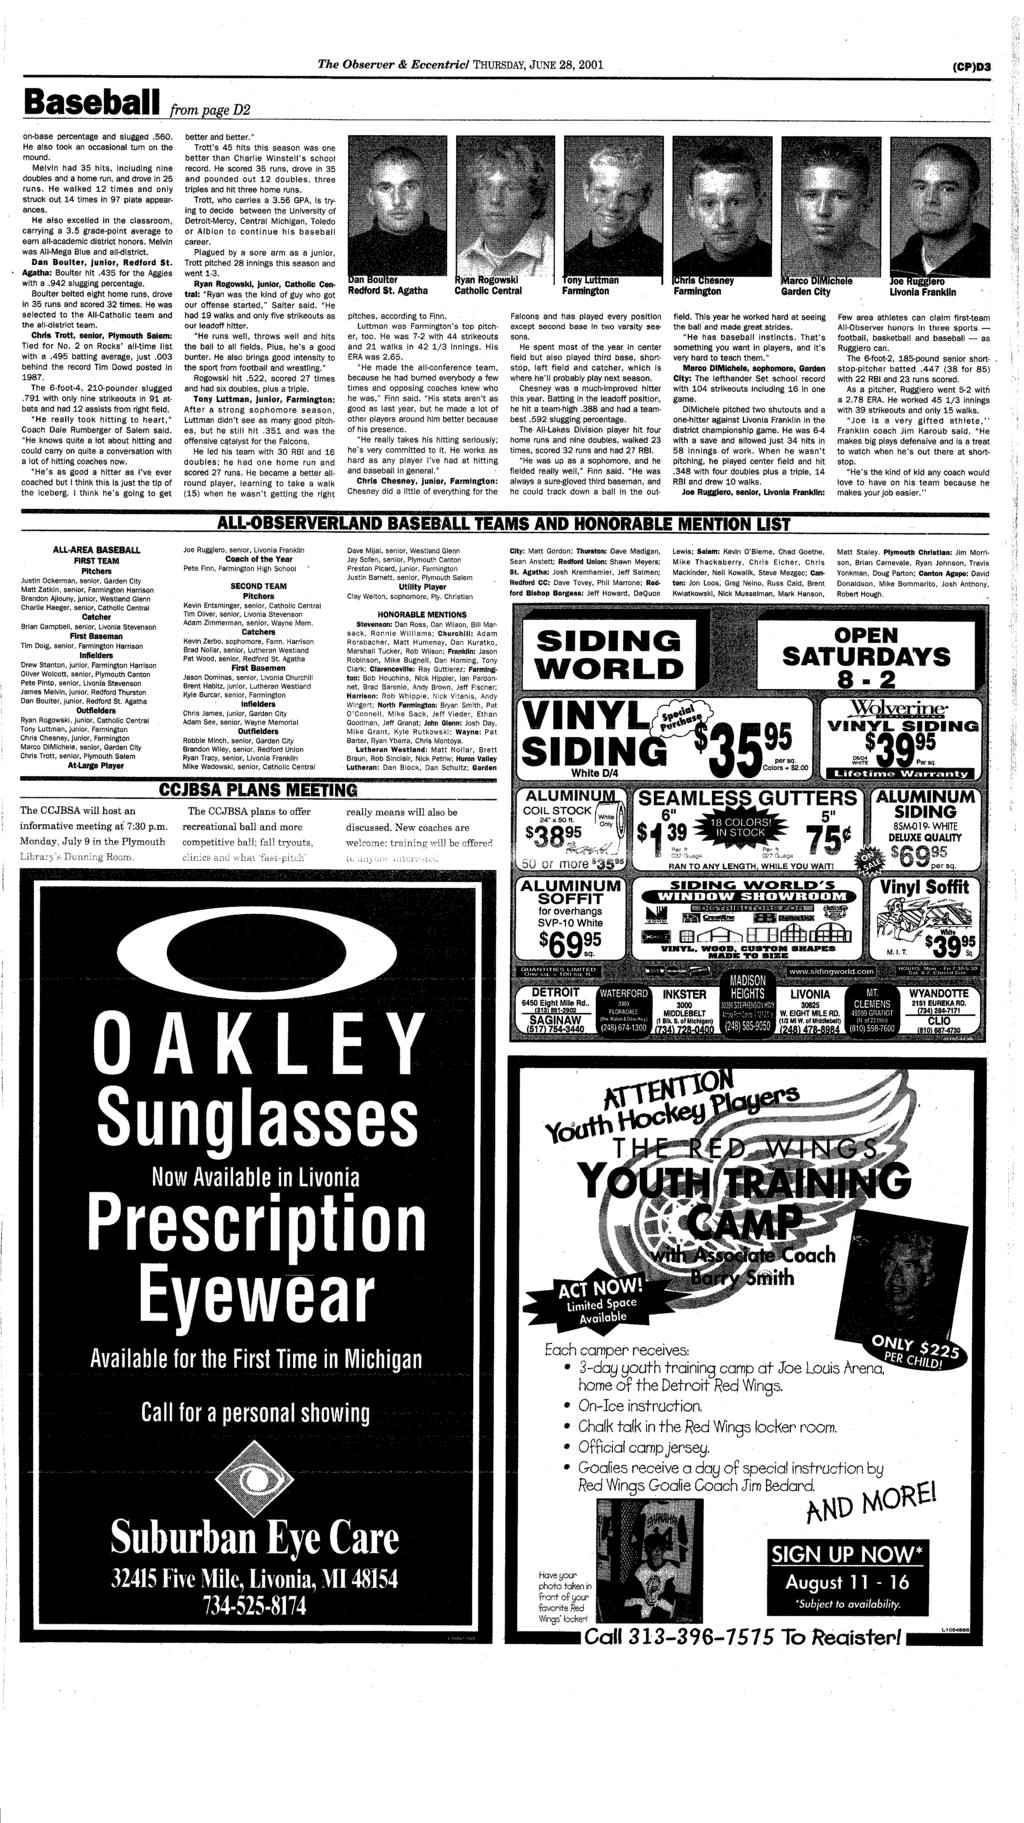 Canton Dbsmrc Your Hometown Newspaper Serving For 26 Years Pdf Diagram Whirlpool Cabrio Washer Parts Uploaded By Nikita On The Observer Eccentric Thursday June 28 2001 Cpd3 Baseball